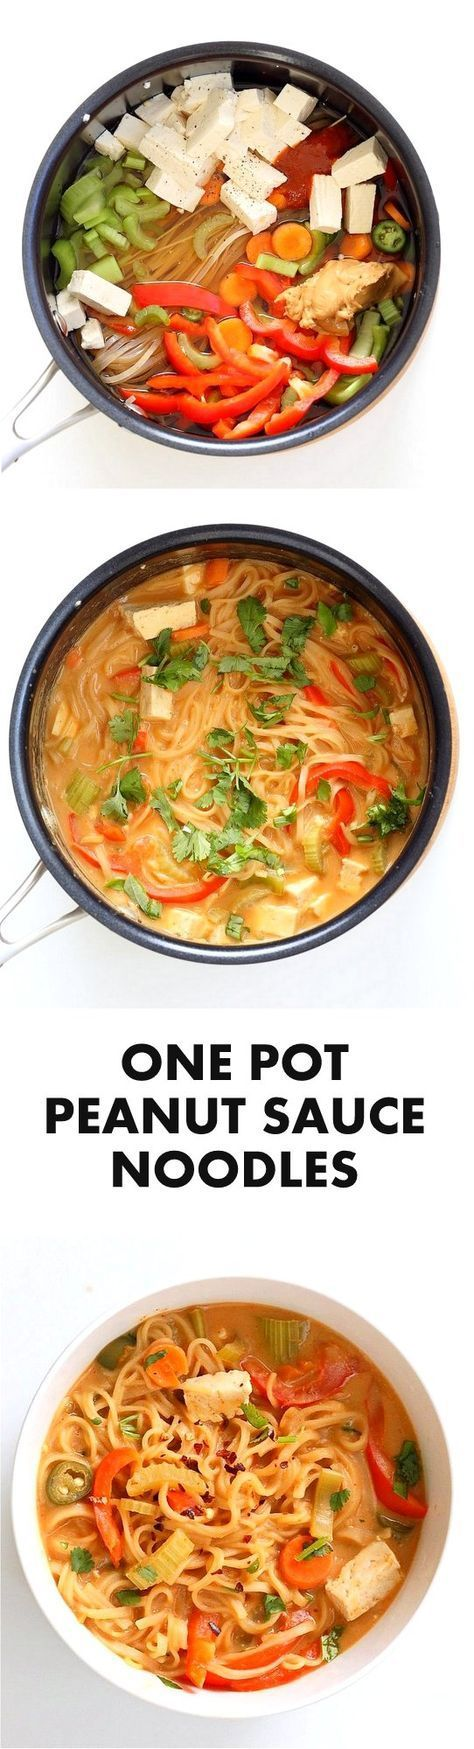 Vegan One Pot Peanut Sauce Noodles: Ready in 20 minutes! Brown rice noodles, veggies, peanut or almond butter, spices, flavors, boil and done. #Easy (parmesan noodles recipe)